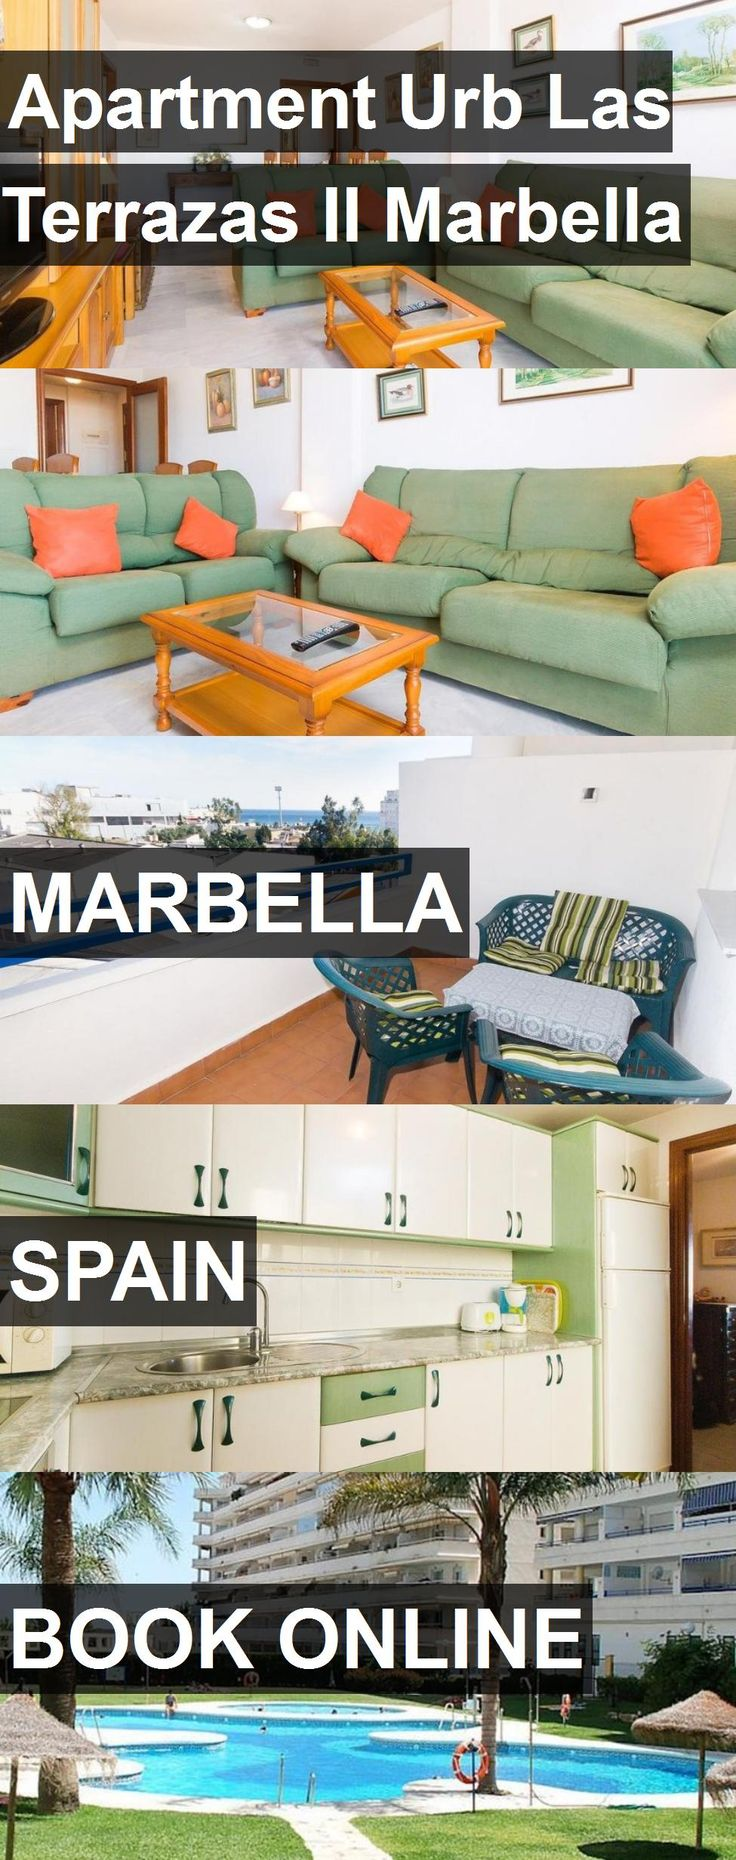 Apartment Urb Las Terrazas II Marbella in Marbella, Spain. For more information, photos, reviews and best prices please follow the link. #Spain #Marbella #travel #vacation #apartment